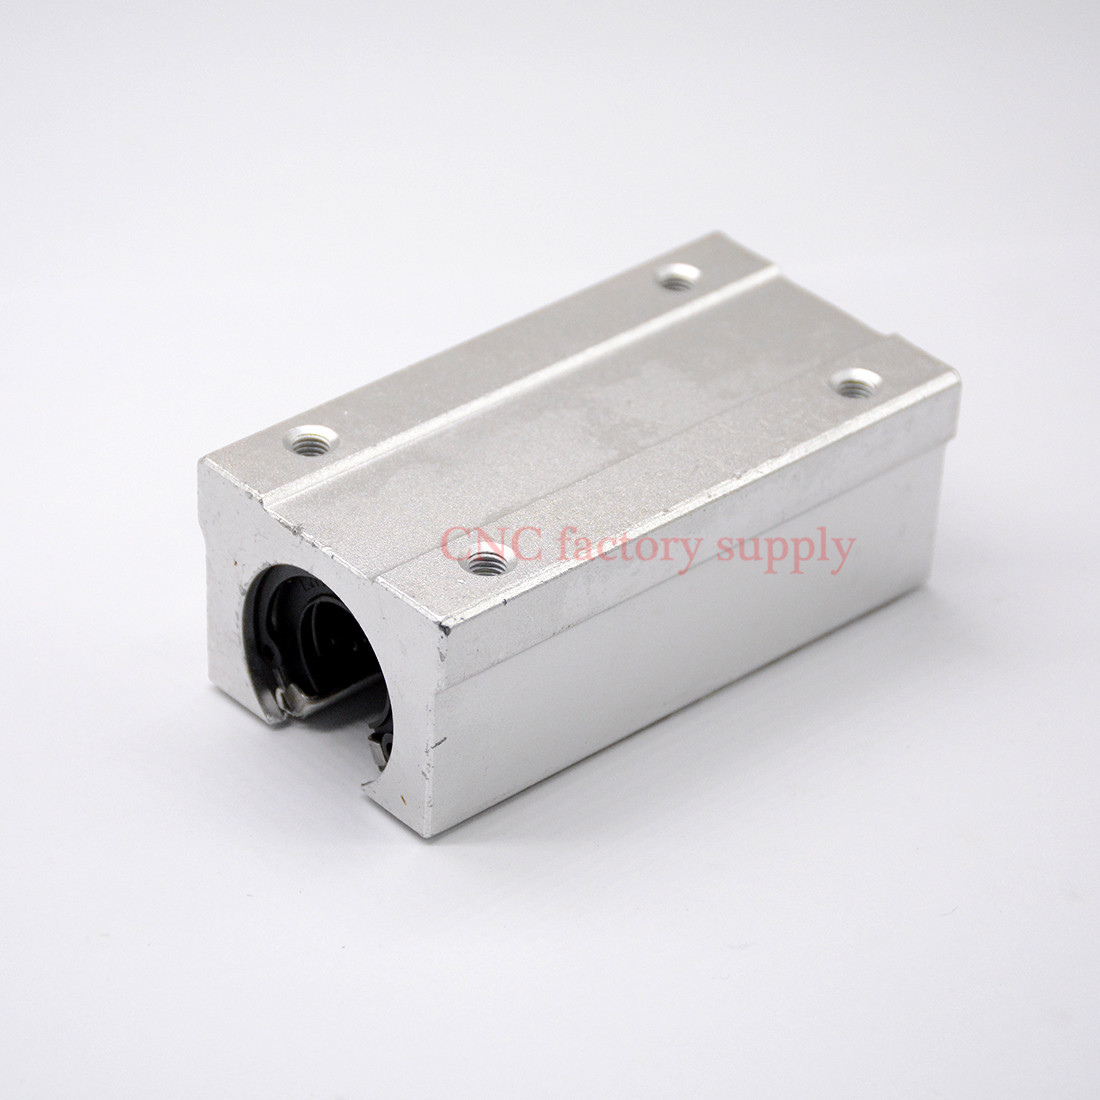 2pcs/lot Free shipping SBR16LUU 16mm Linear Ball Bearing Block CNC Router free shipping sc16vuu sc16v scv16uu scv16 16mm linear bearing block diy linear slide bearing units cnc router